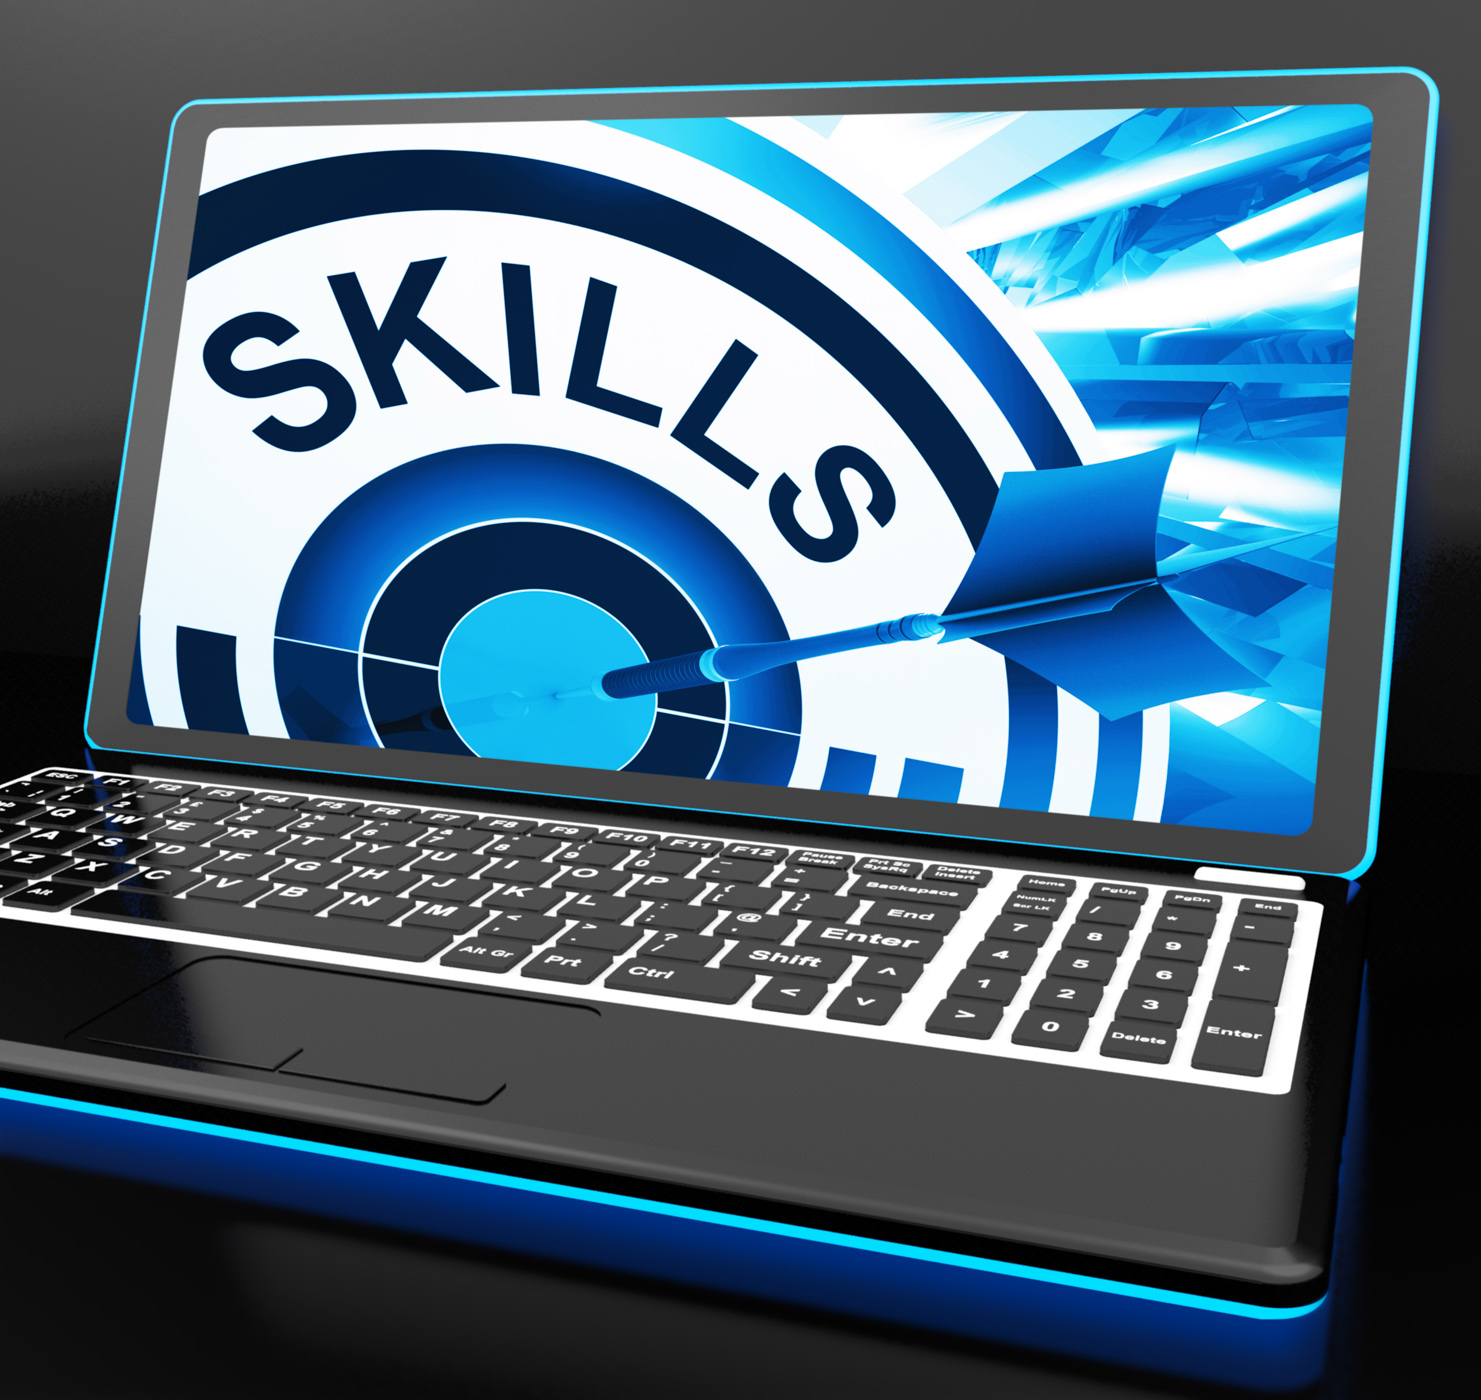 Skills on laptop shows great abilities photo